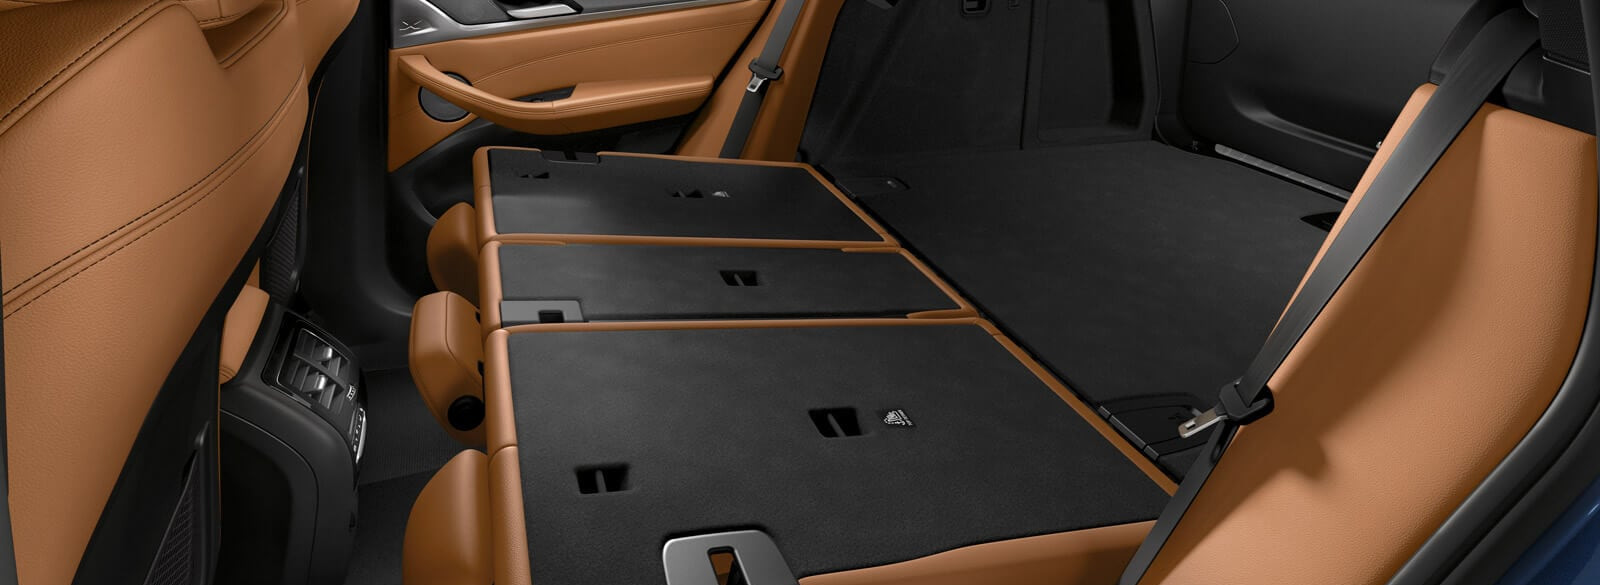 Versatile Storage in the 2020 BMW X3